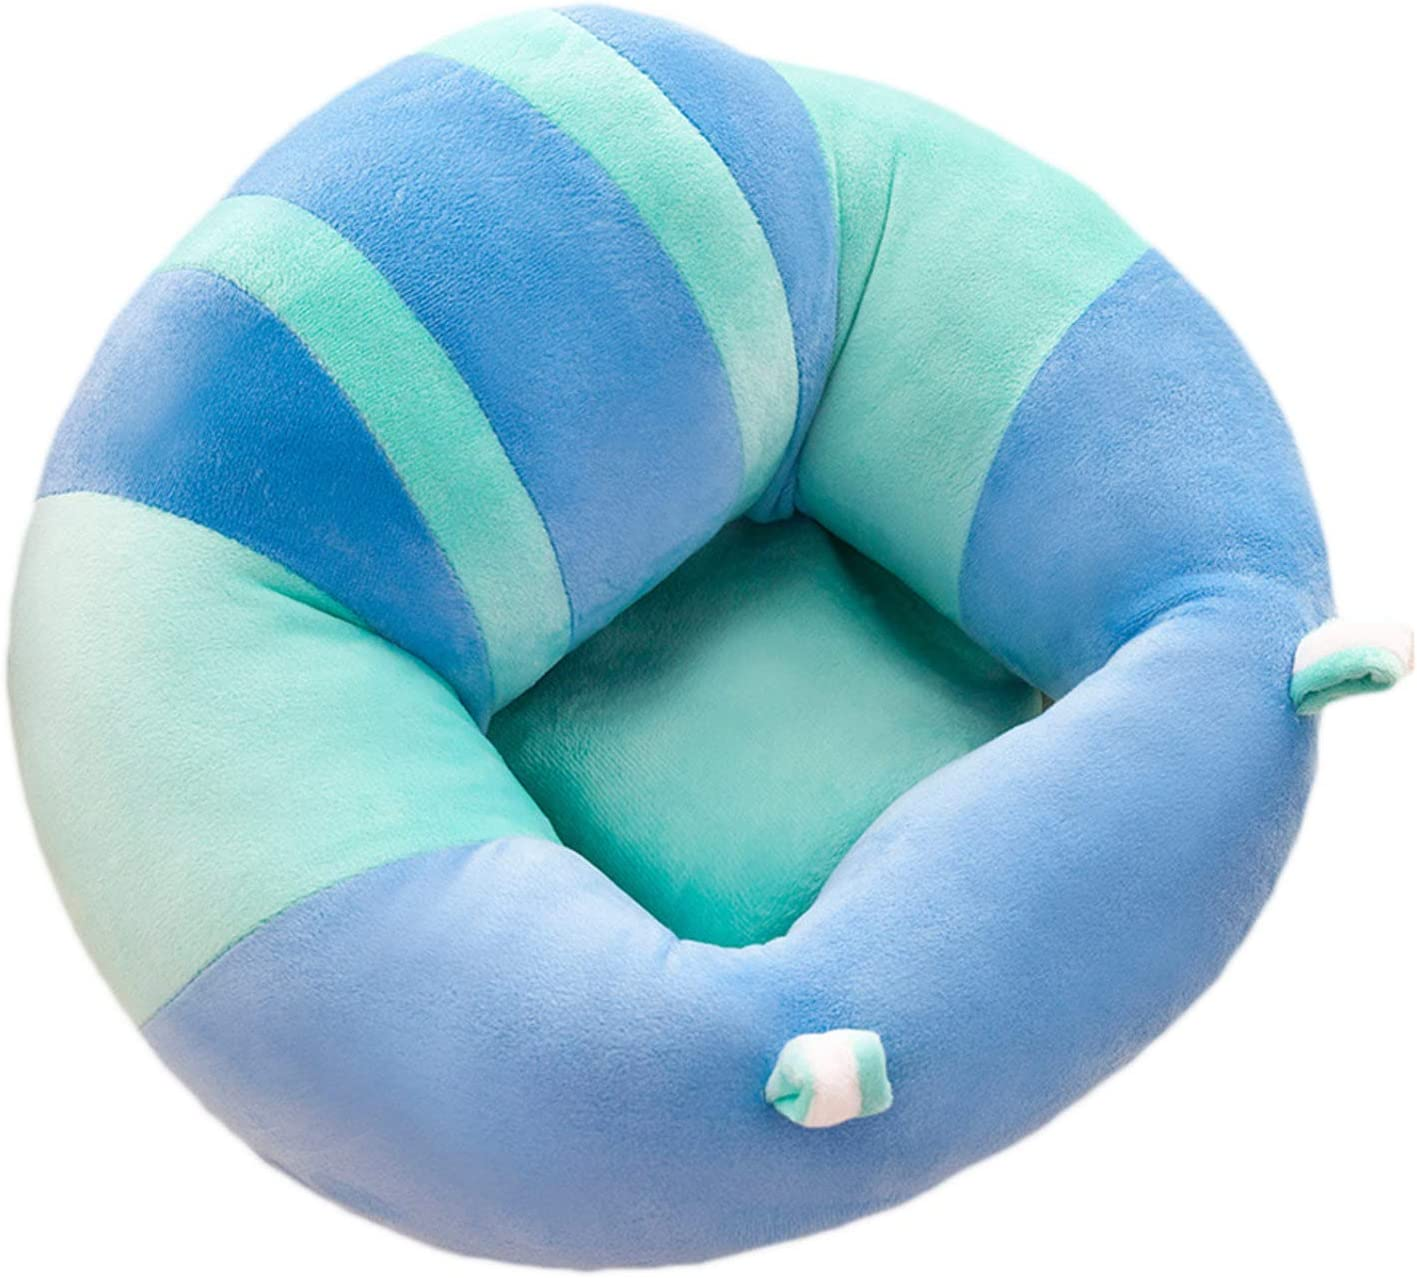 Yutone Baby Support Seat for 5 Months-2 Years Old Baby Plush Soft Comfortable Baby Sofa Infant Learning to Sit Chair